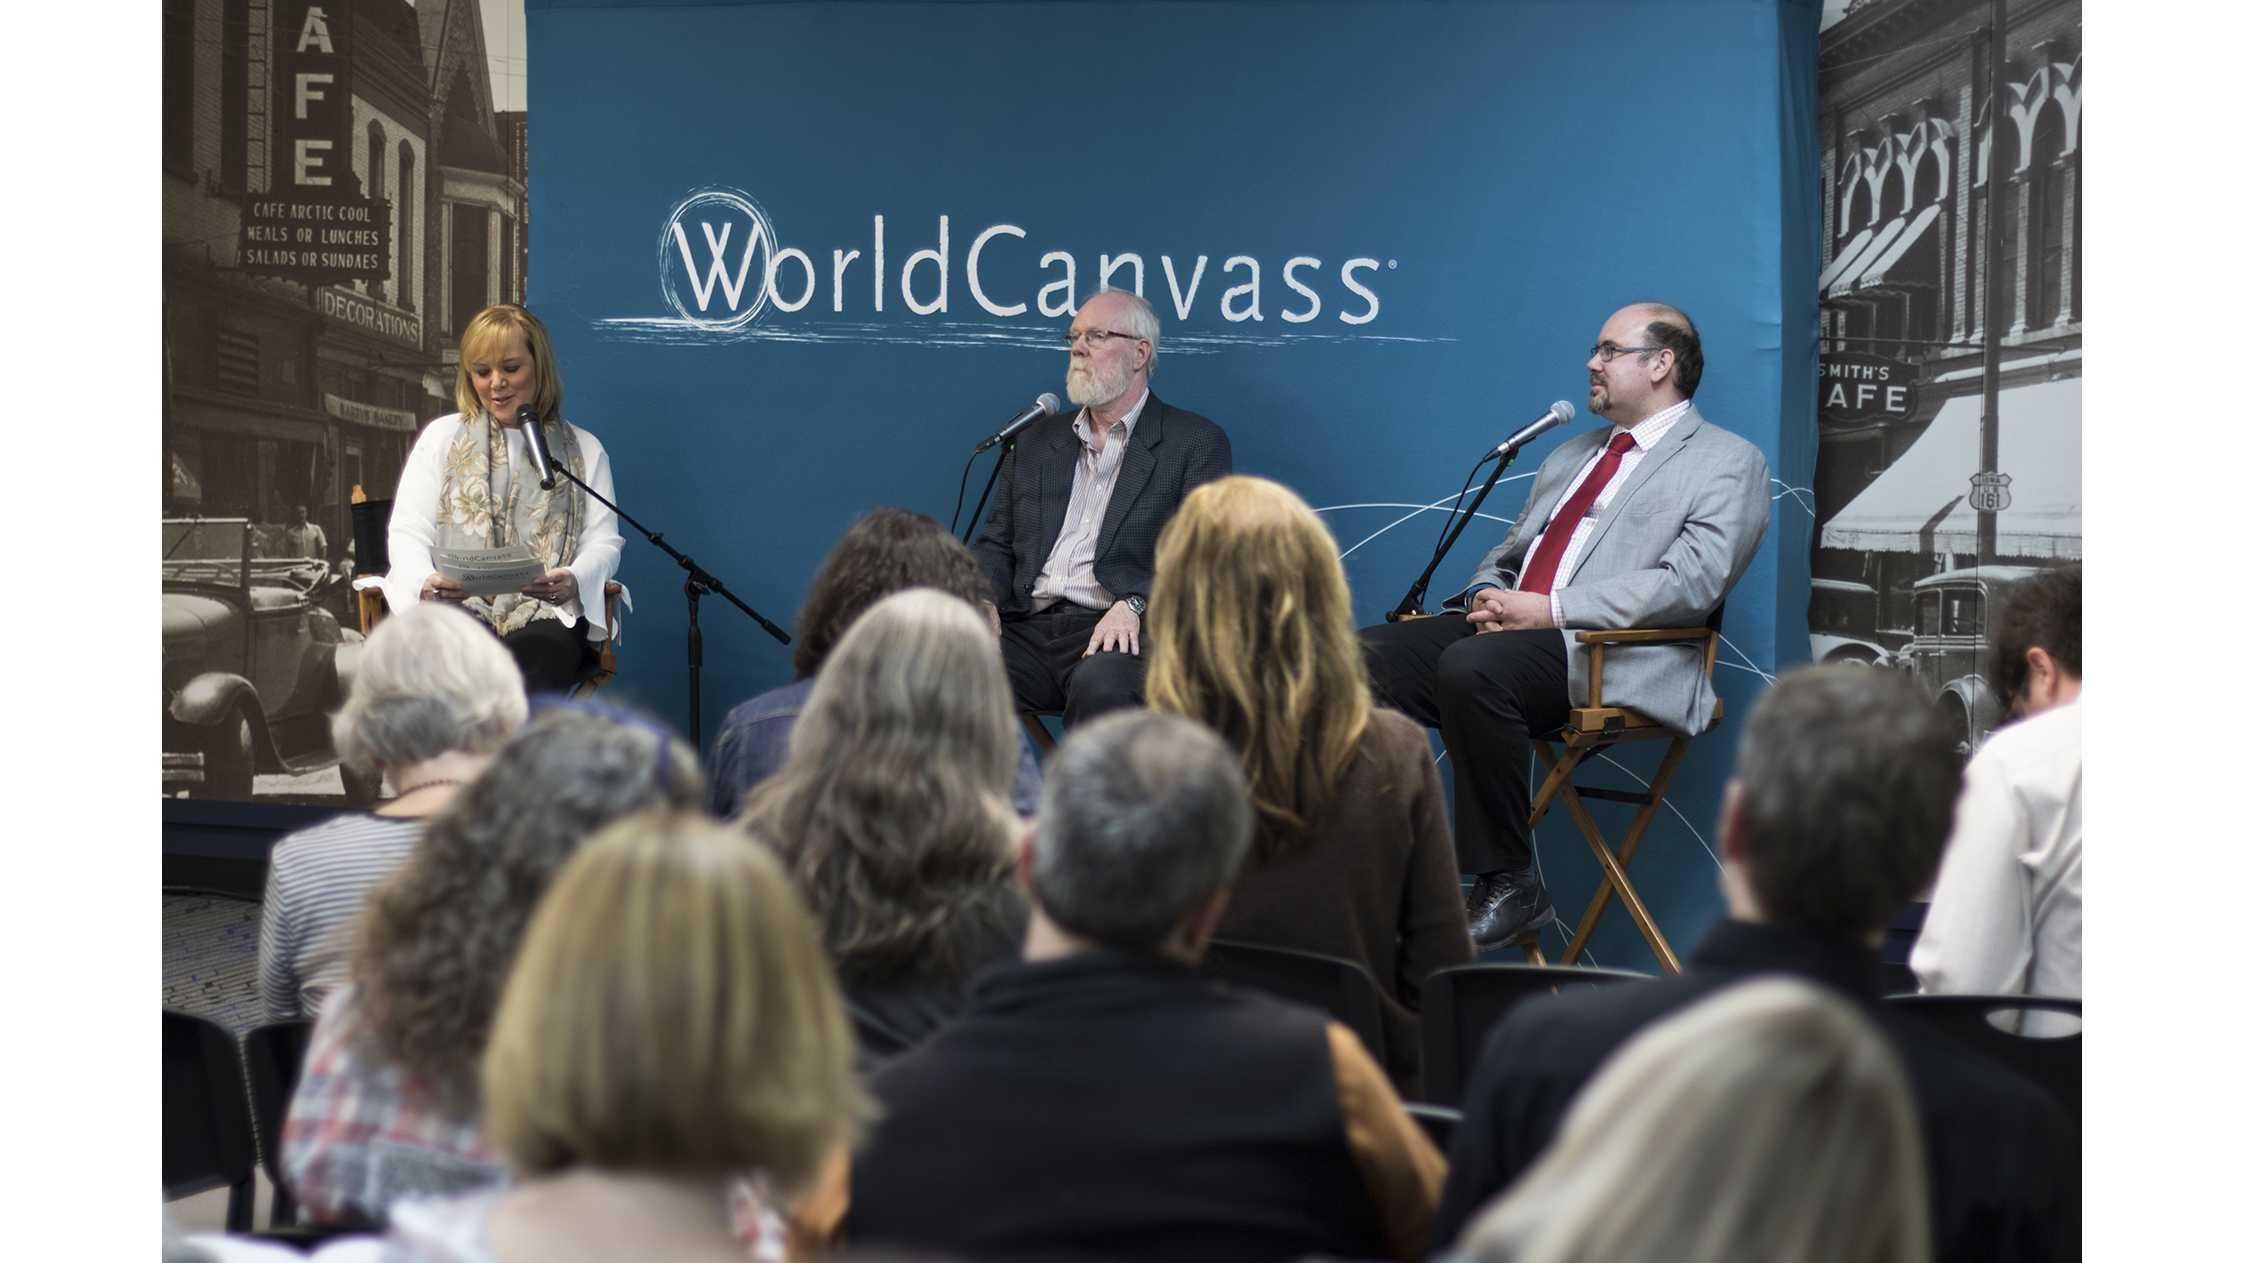 Joan Kjaer (left) interviews professors Greg Carmichael (center) and Gabriele Villarini (right) at MERGE in Iowa City on Wednesday, April 25, 2018. (Shivansh Ahuja/The Daily Iowan)